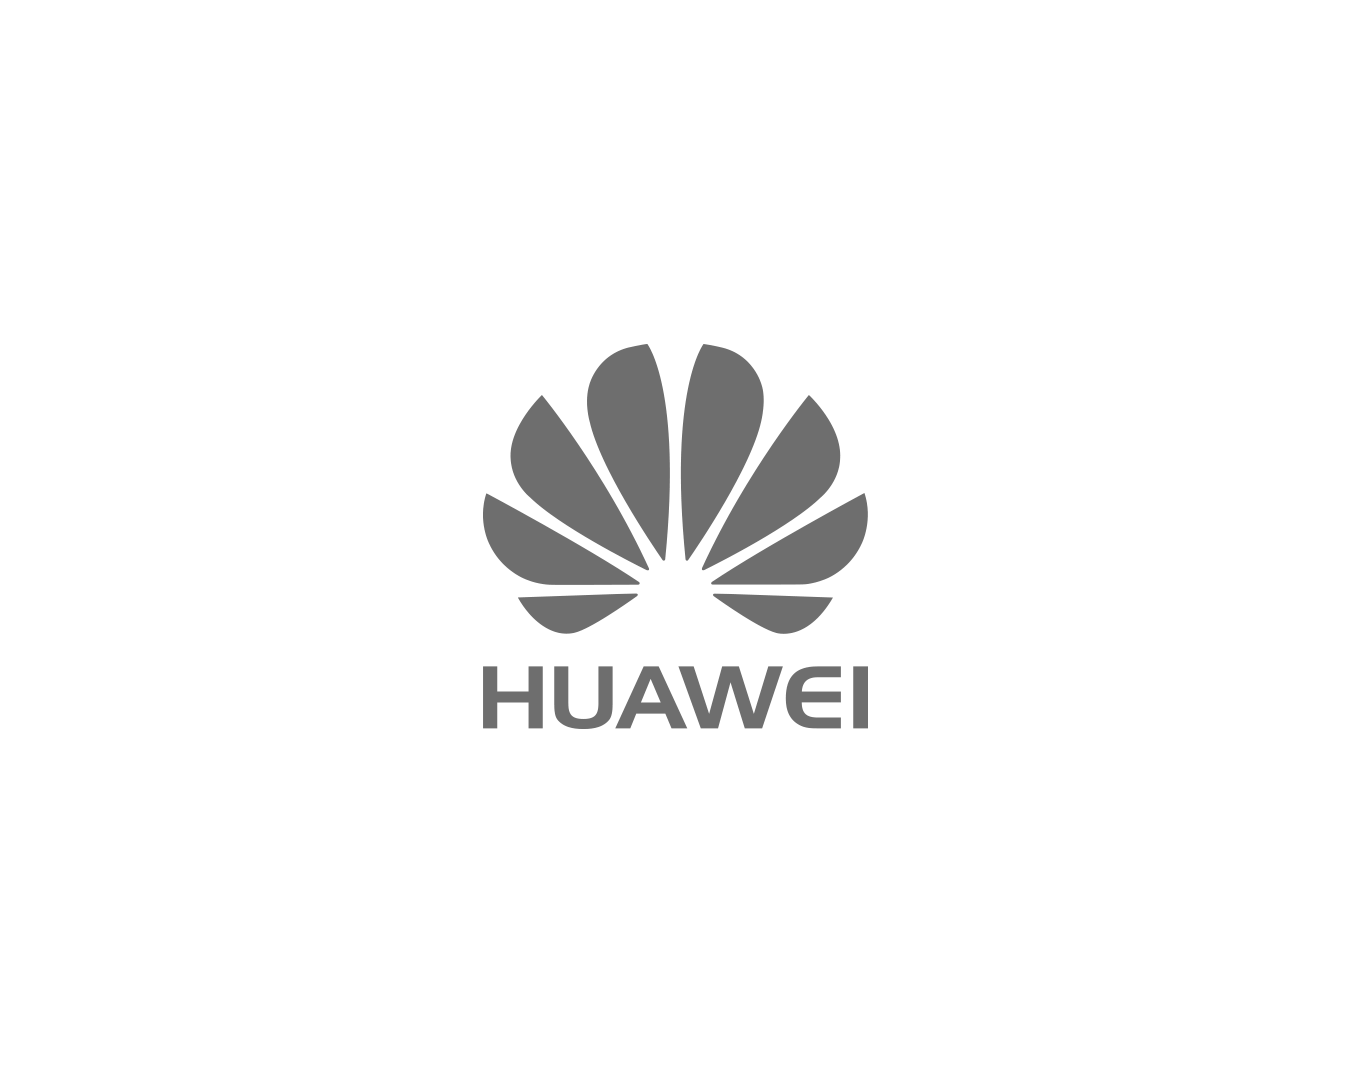 Huawei campaign